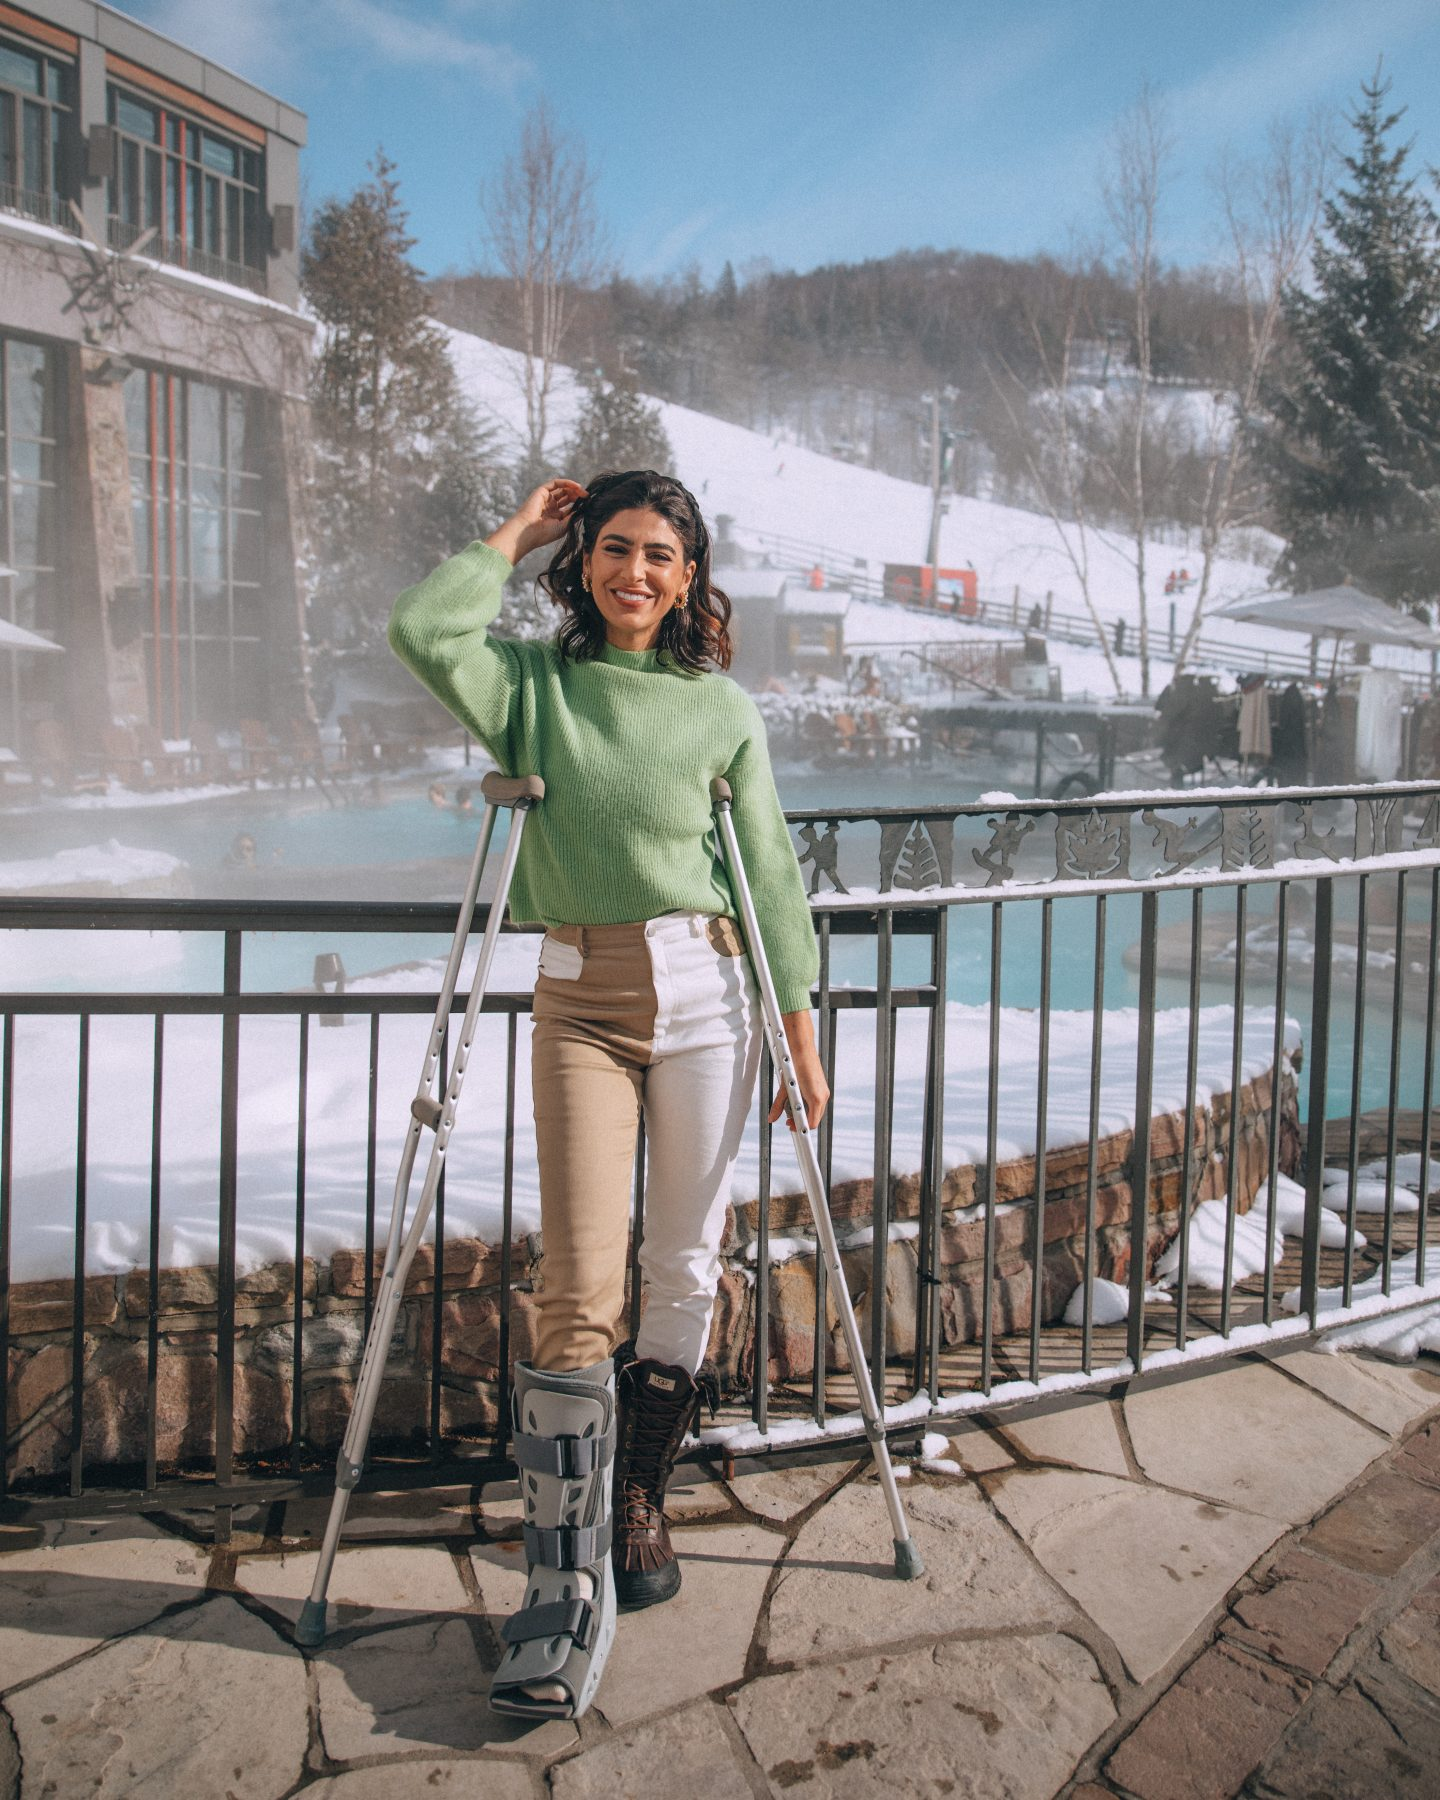 Lisa Homsy working with brands and posing at a hotel in spite of a broken ankle